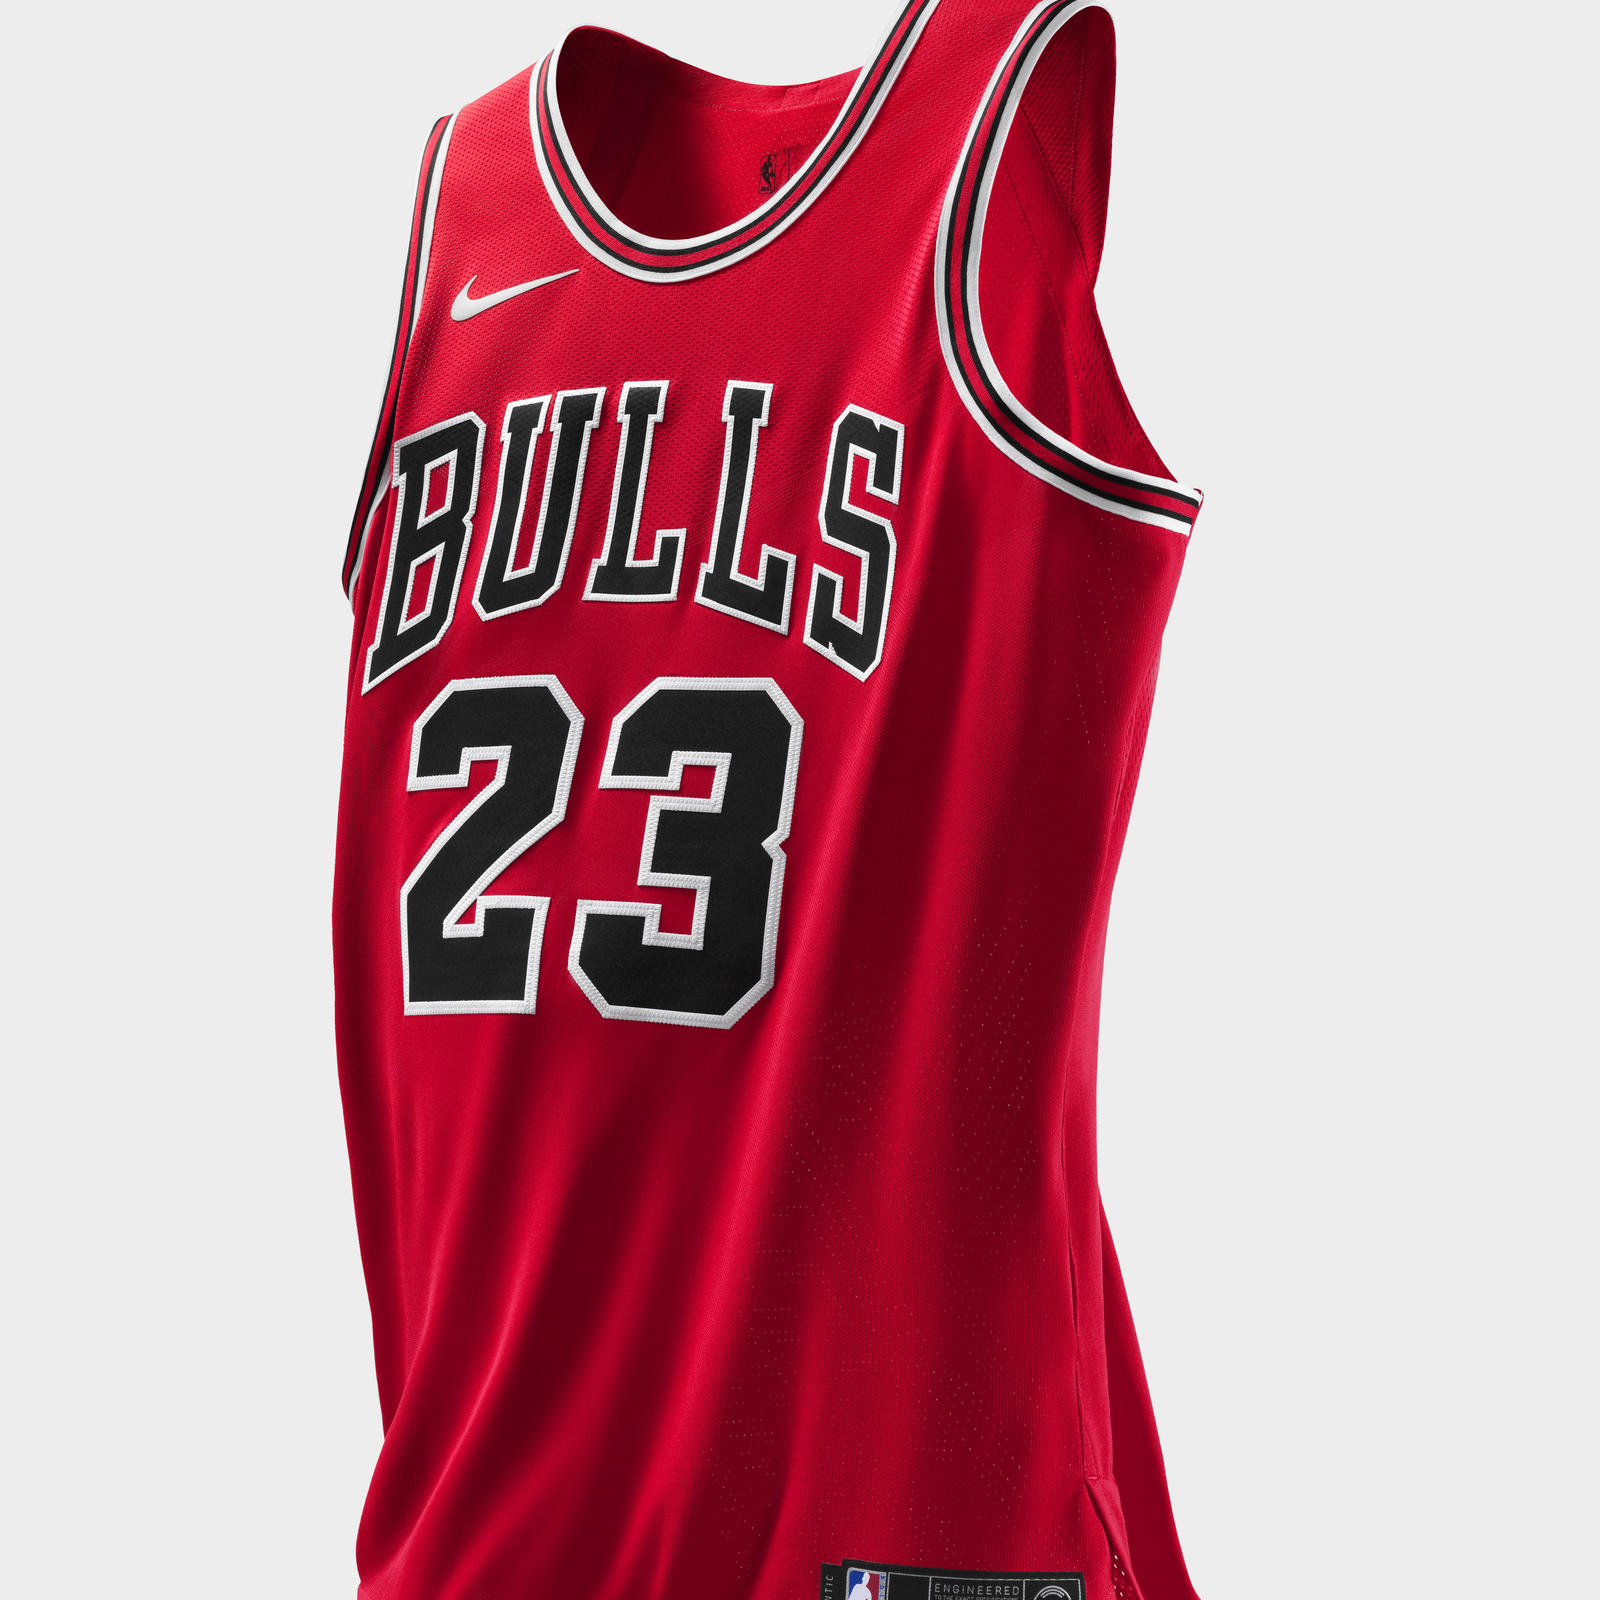 Michael Jordan s Chicago Finale Commemorated with Limited-Edition Bulls  Jersey 6 647a19984